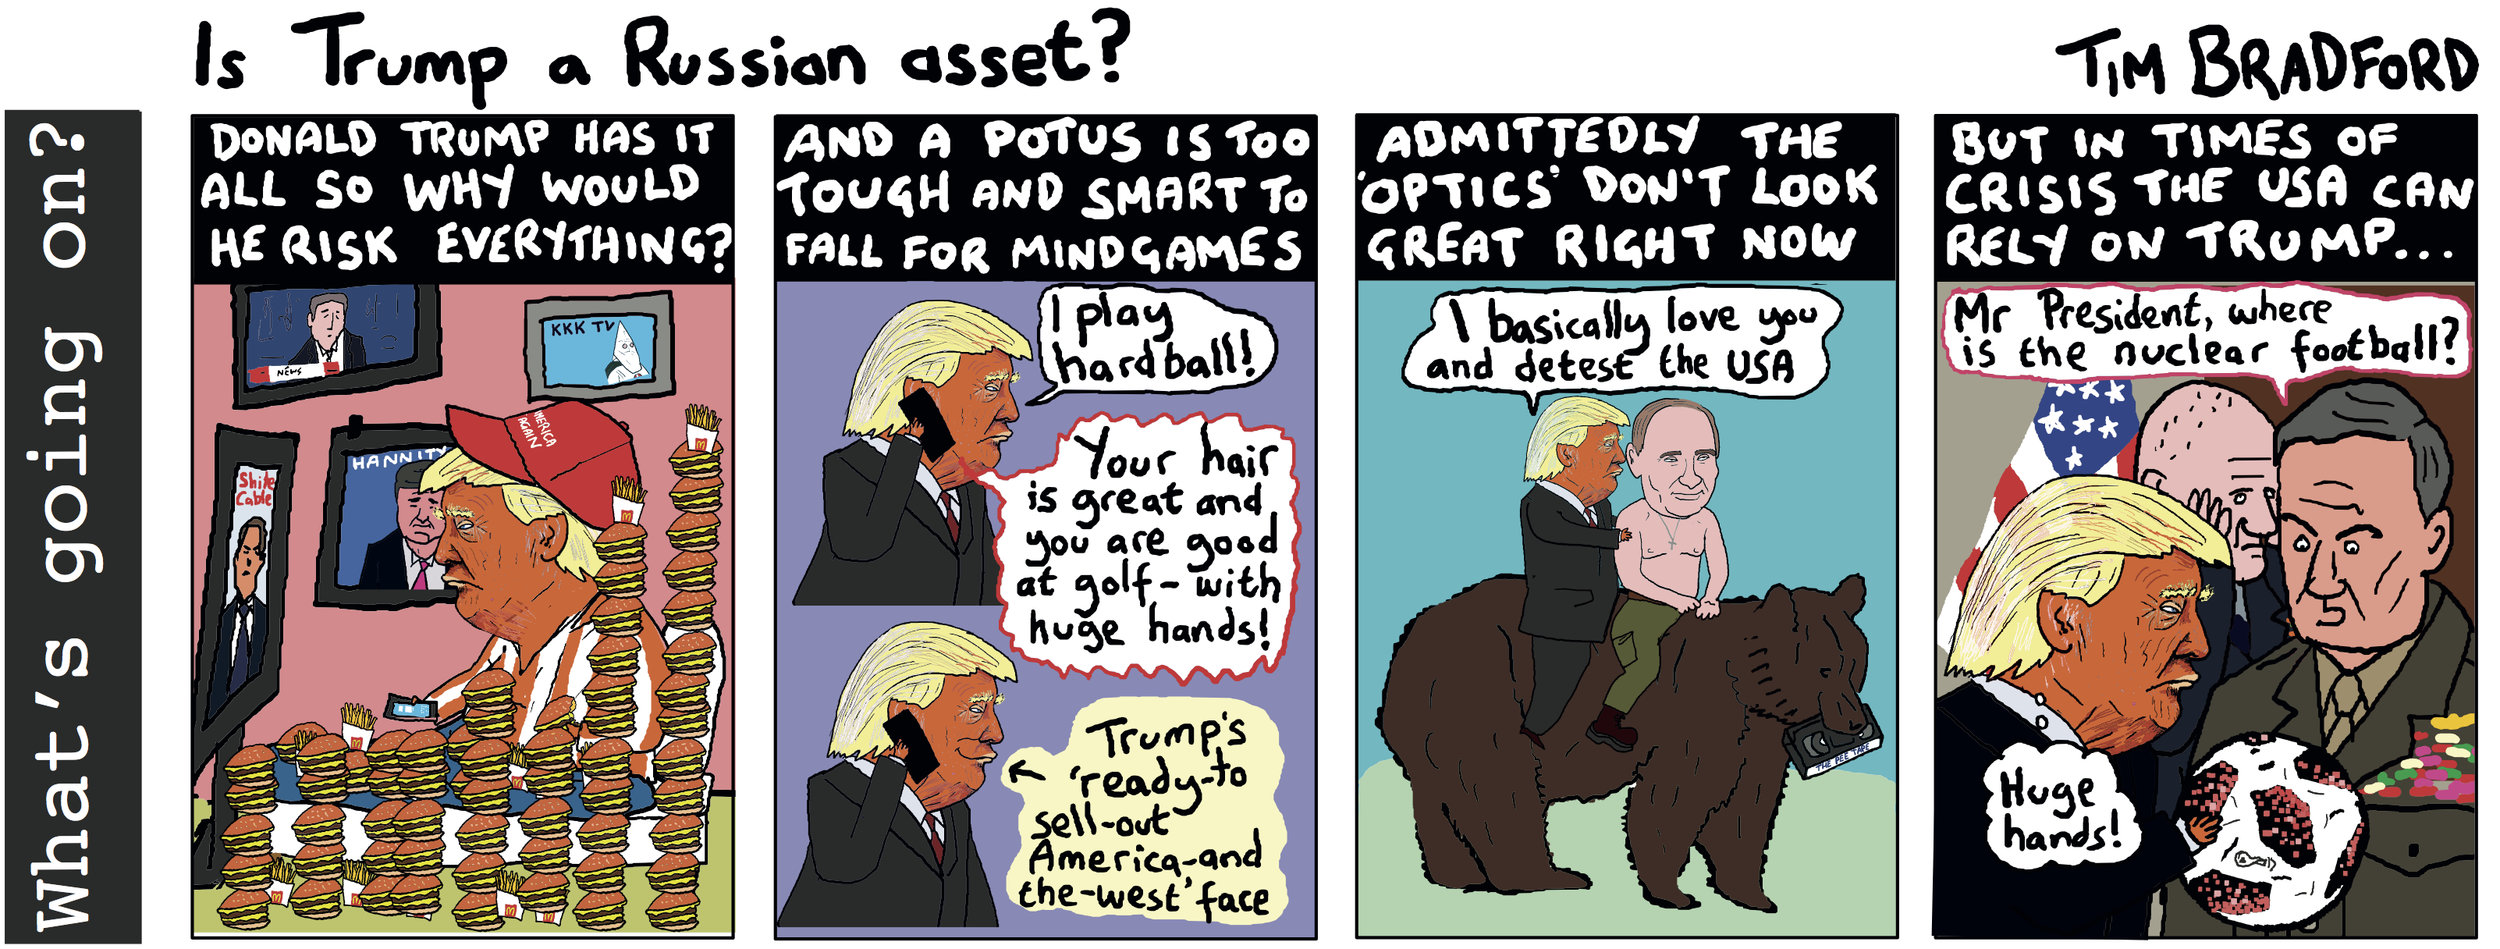 Is Trump a Russian asset? - 17/07/18